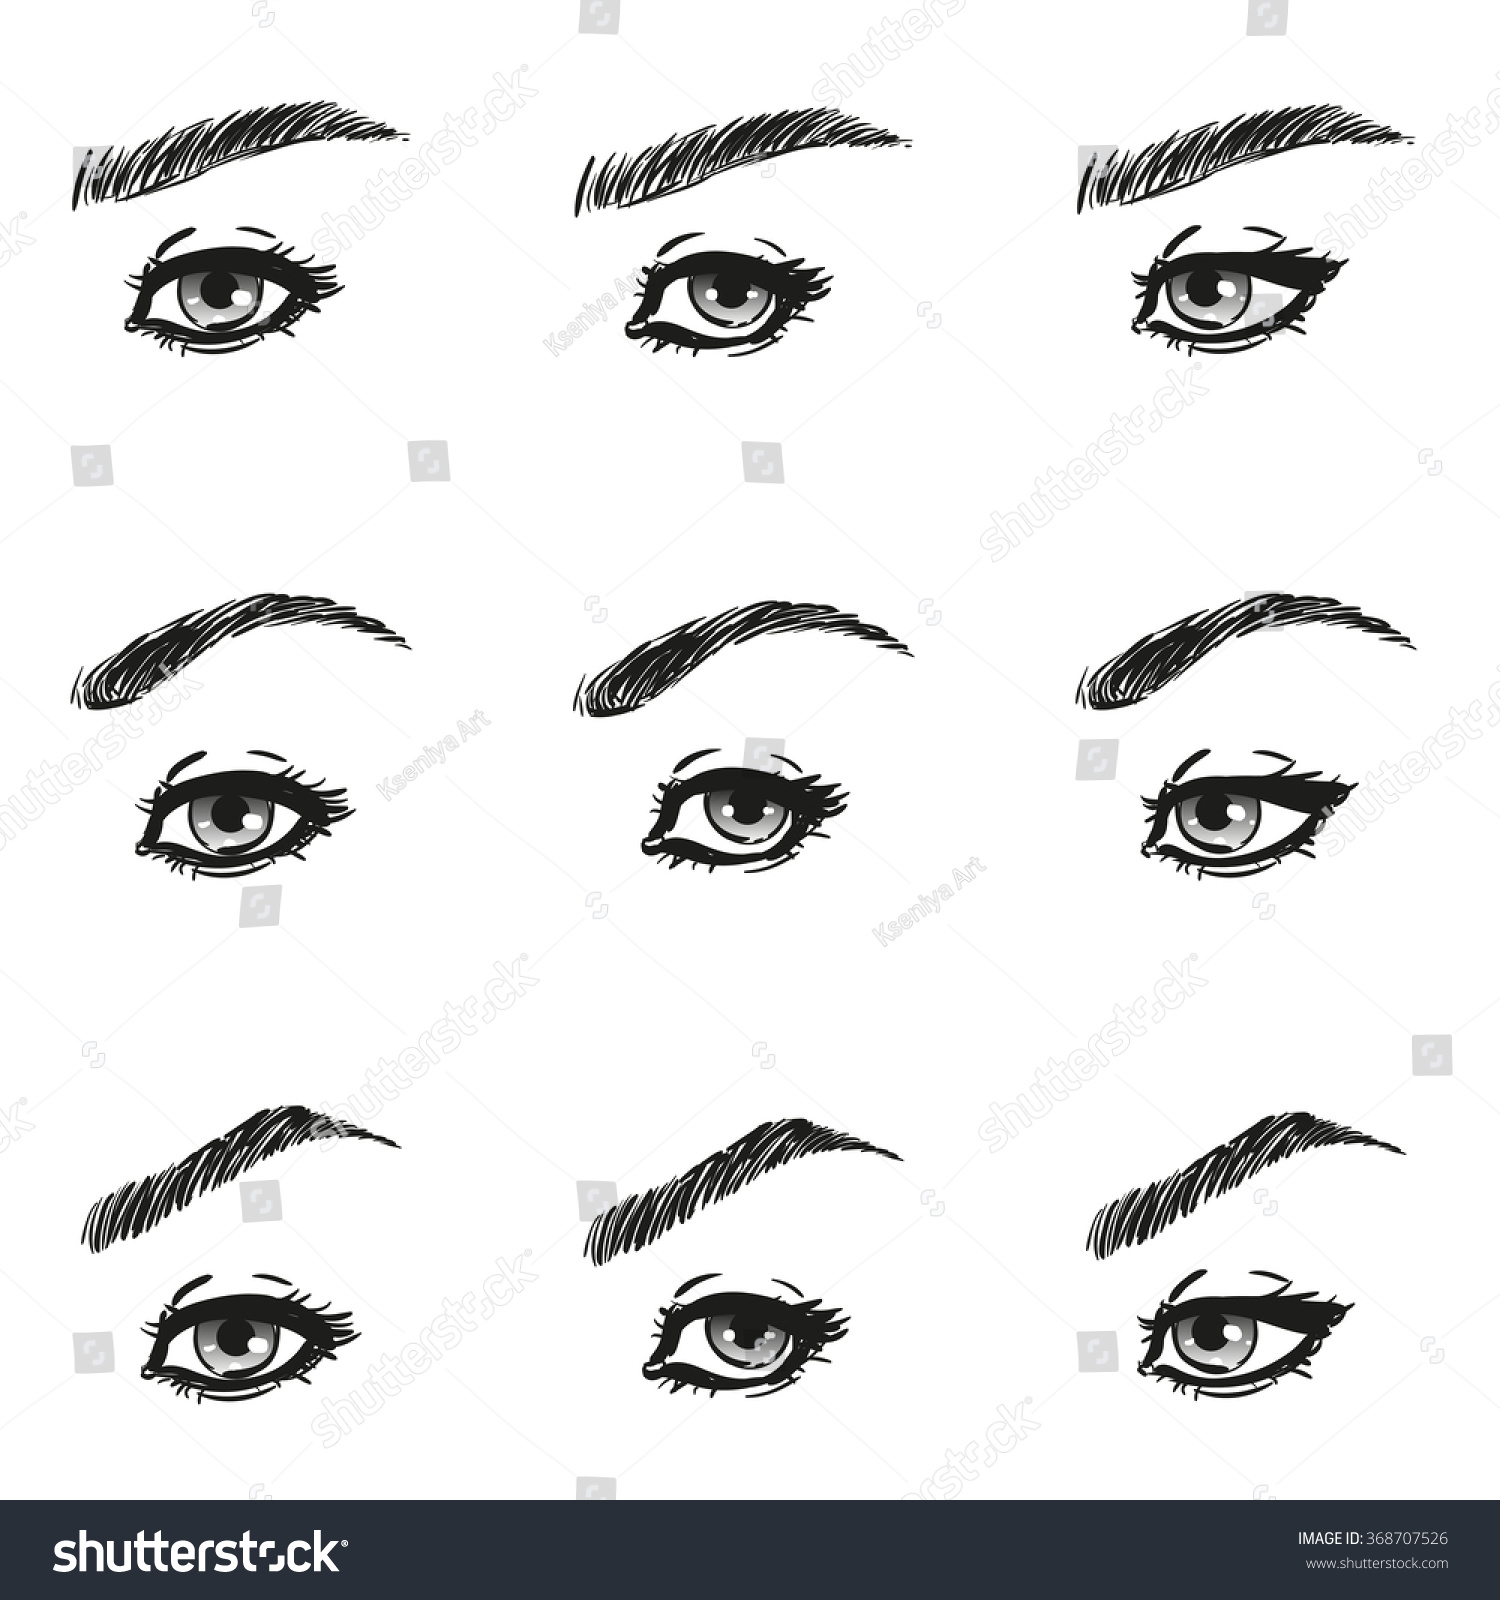 Icons set female eye long eyelashes stock photo photo vector icons set female eye with long eyelashes and eyebrows different shapes look just to the left ccuart Gallery